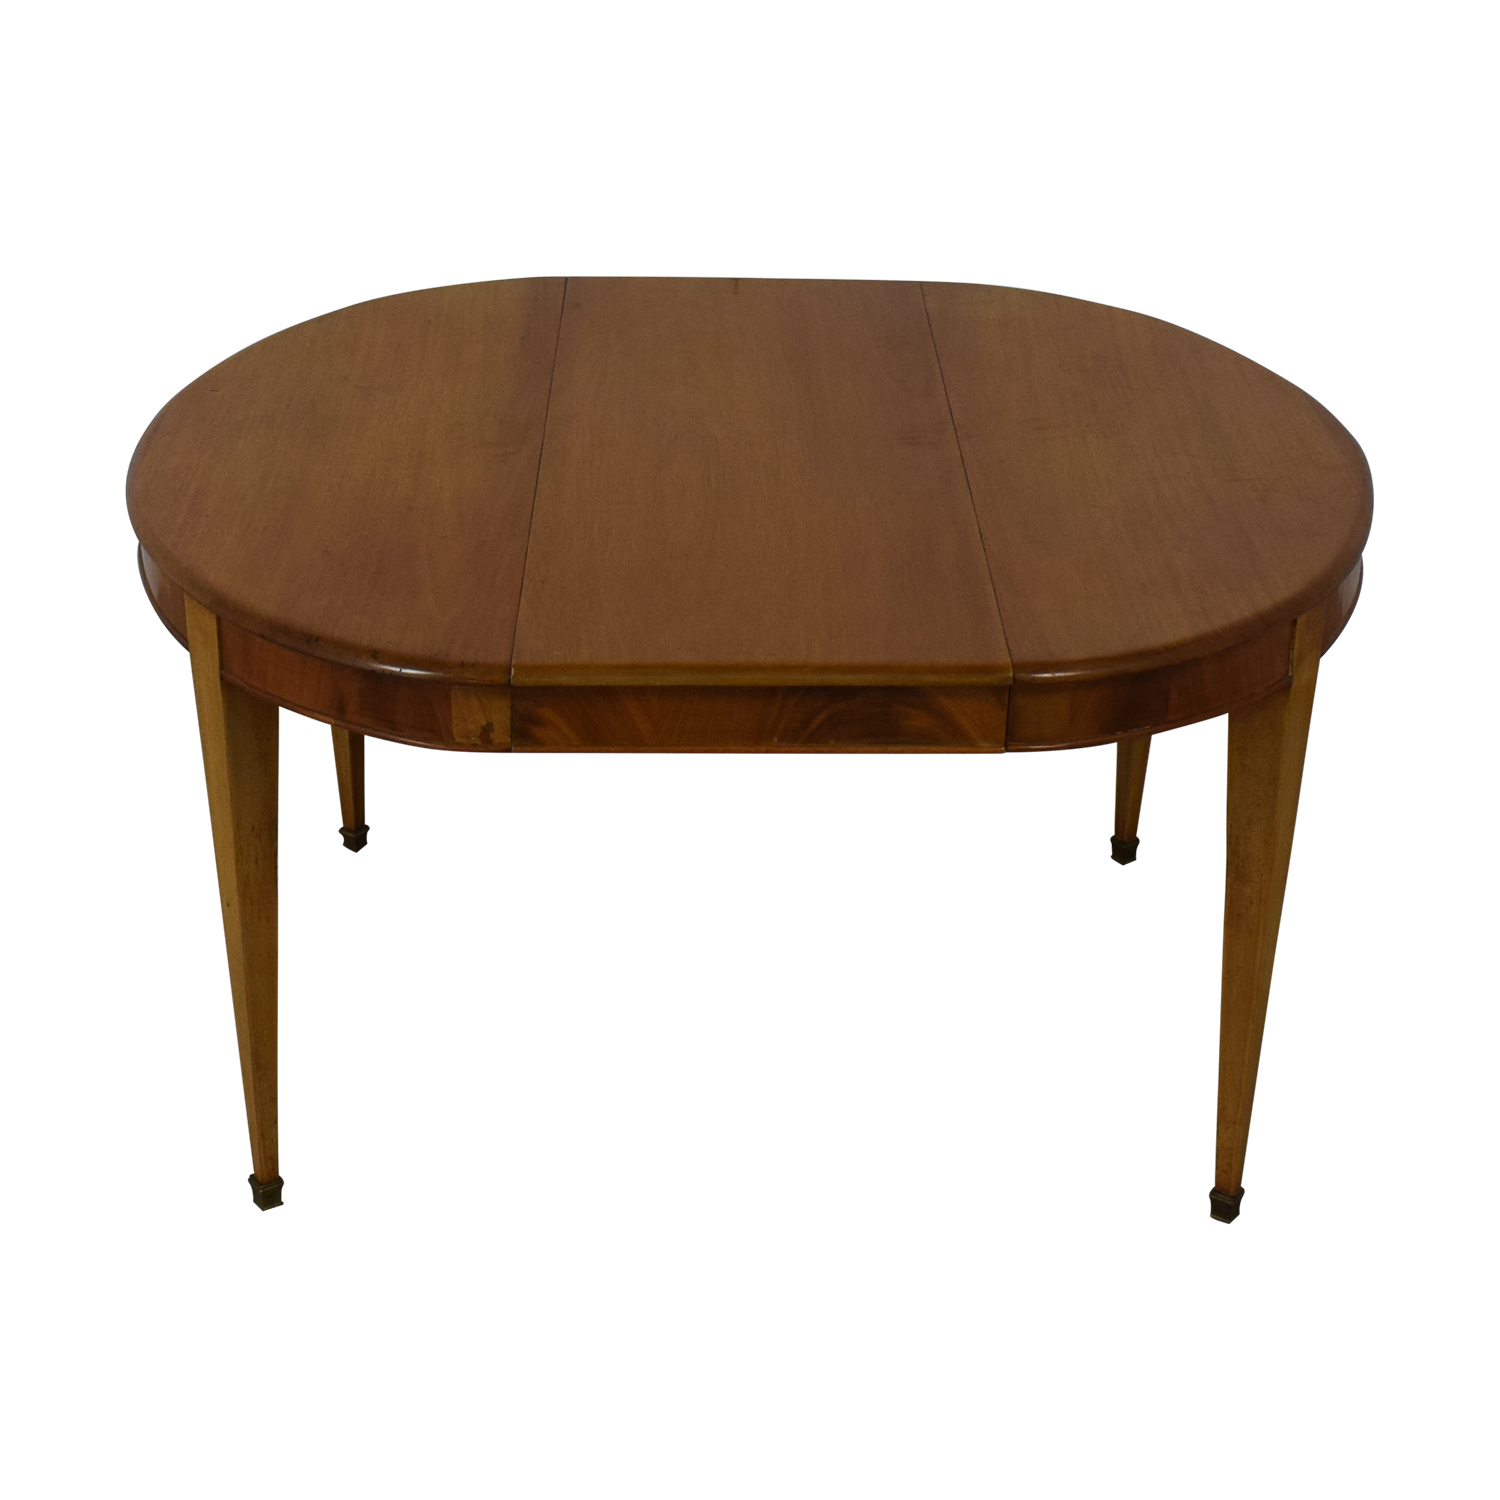 Antique Round Dining Table second hand